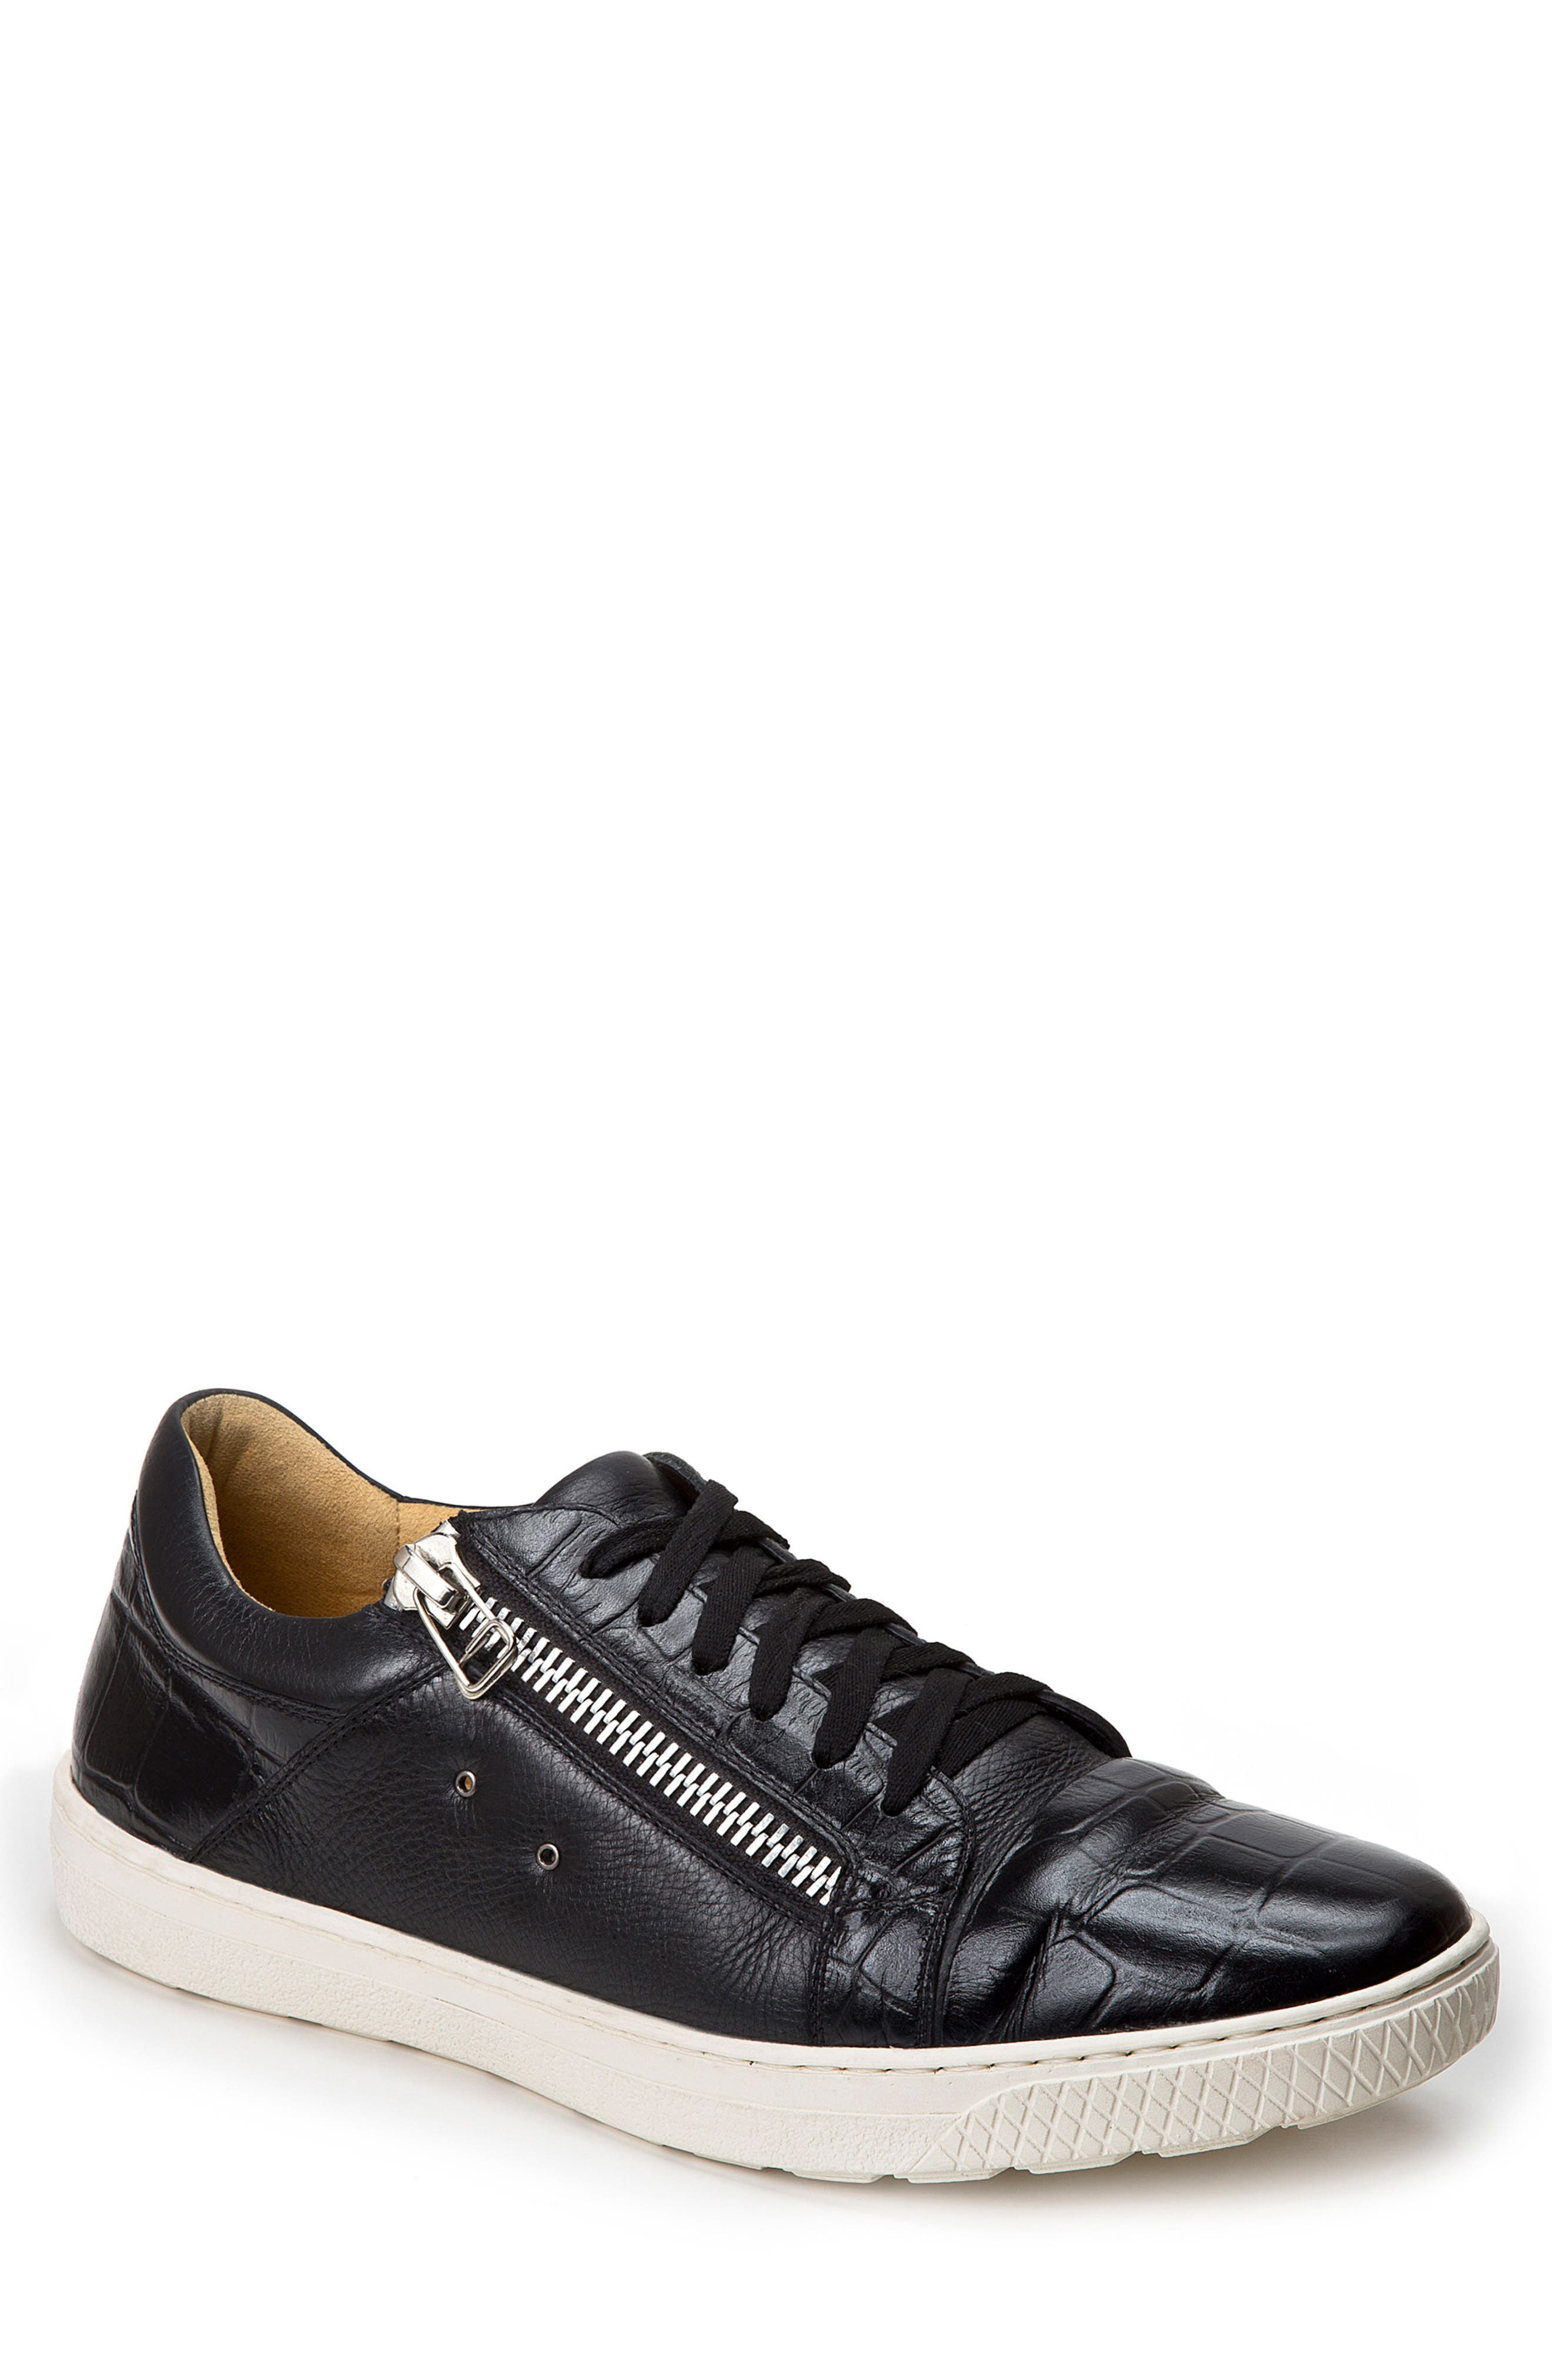 Cassius Side Zip Sneaker,                             Main thumbnail 1, color,                             Black Leather